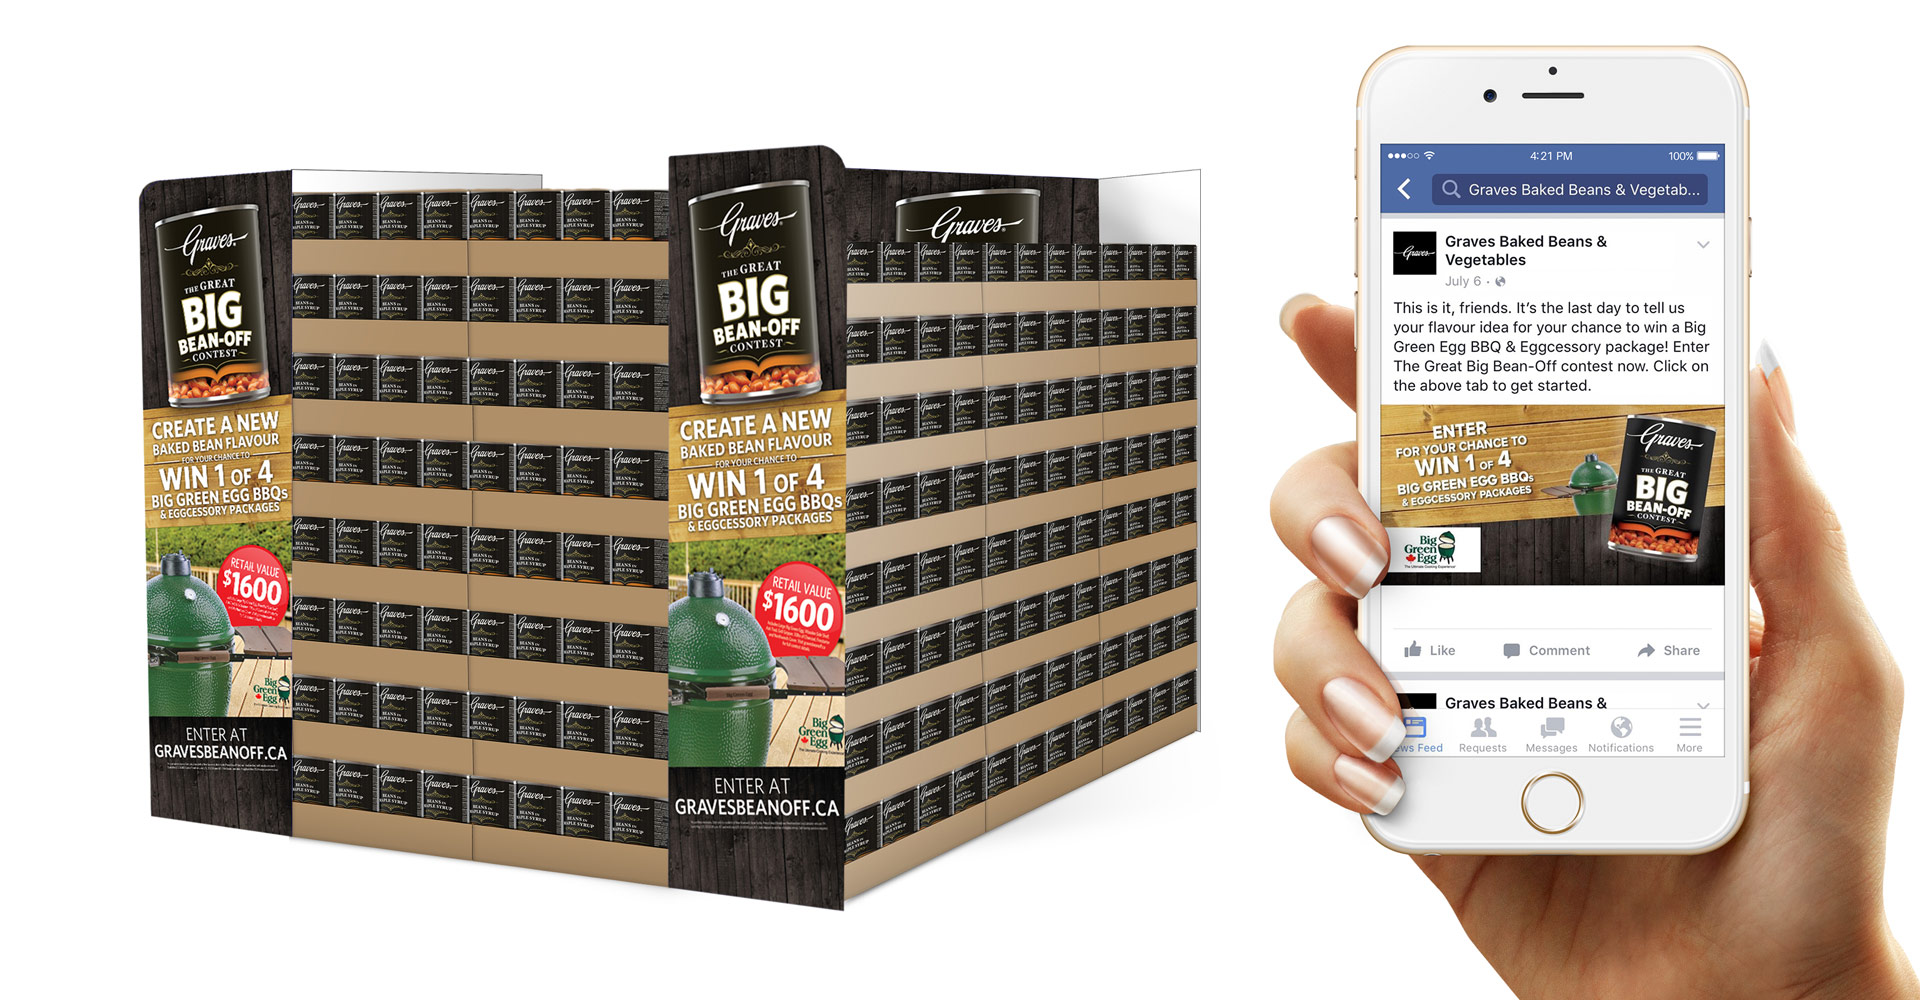 Graves baked beans experiential marketing and digital design.